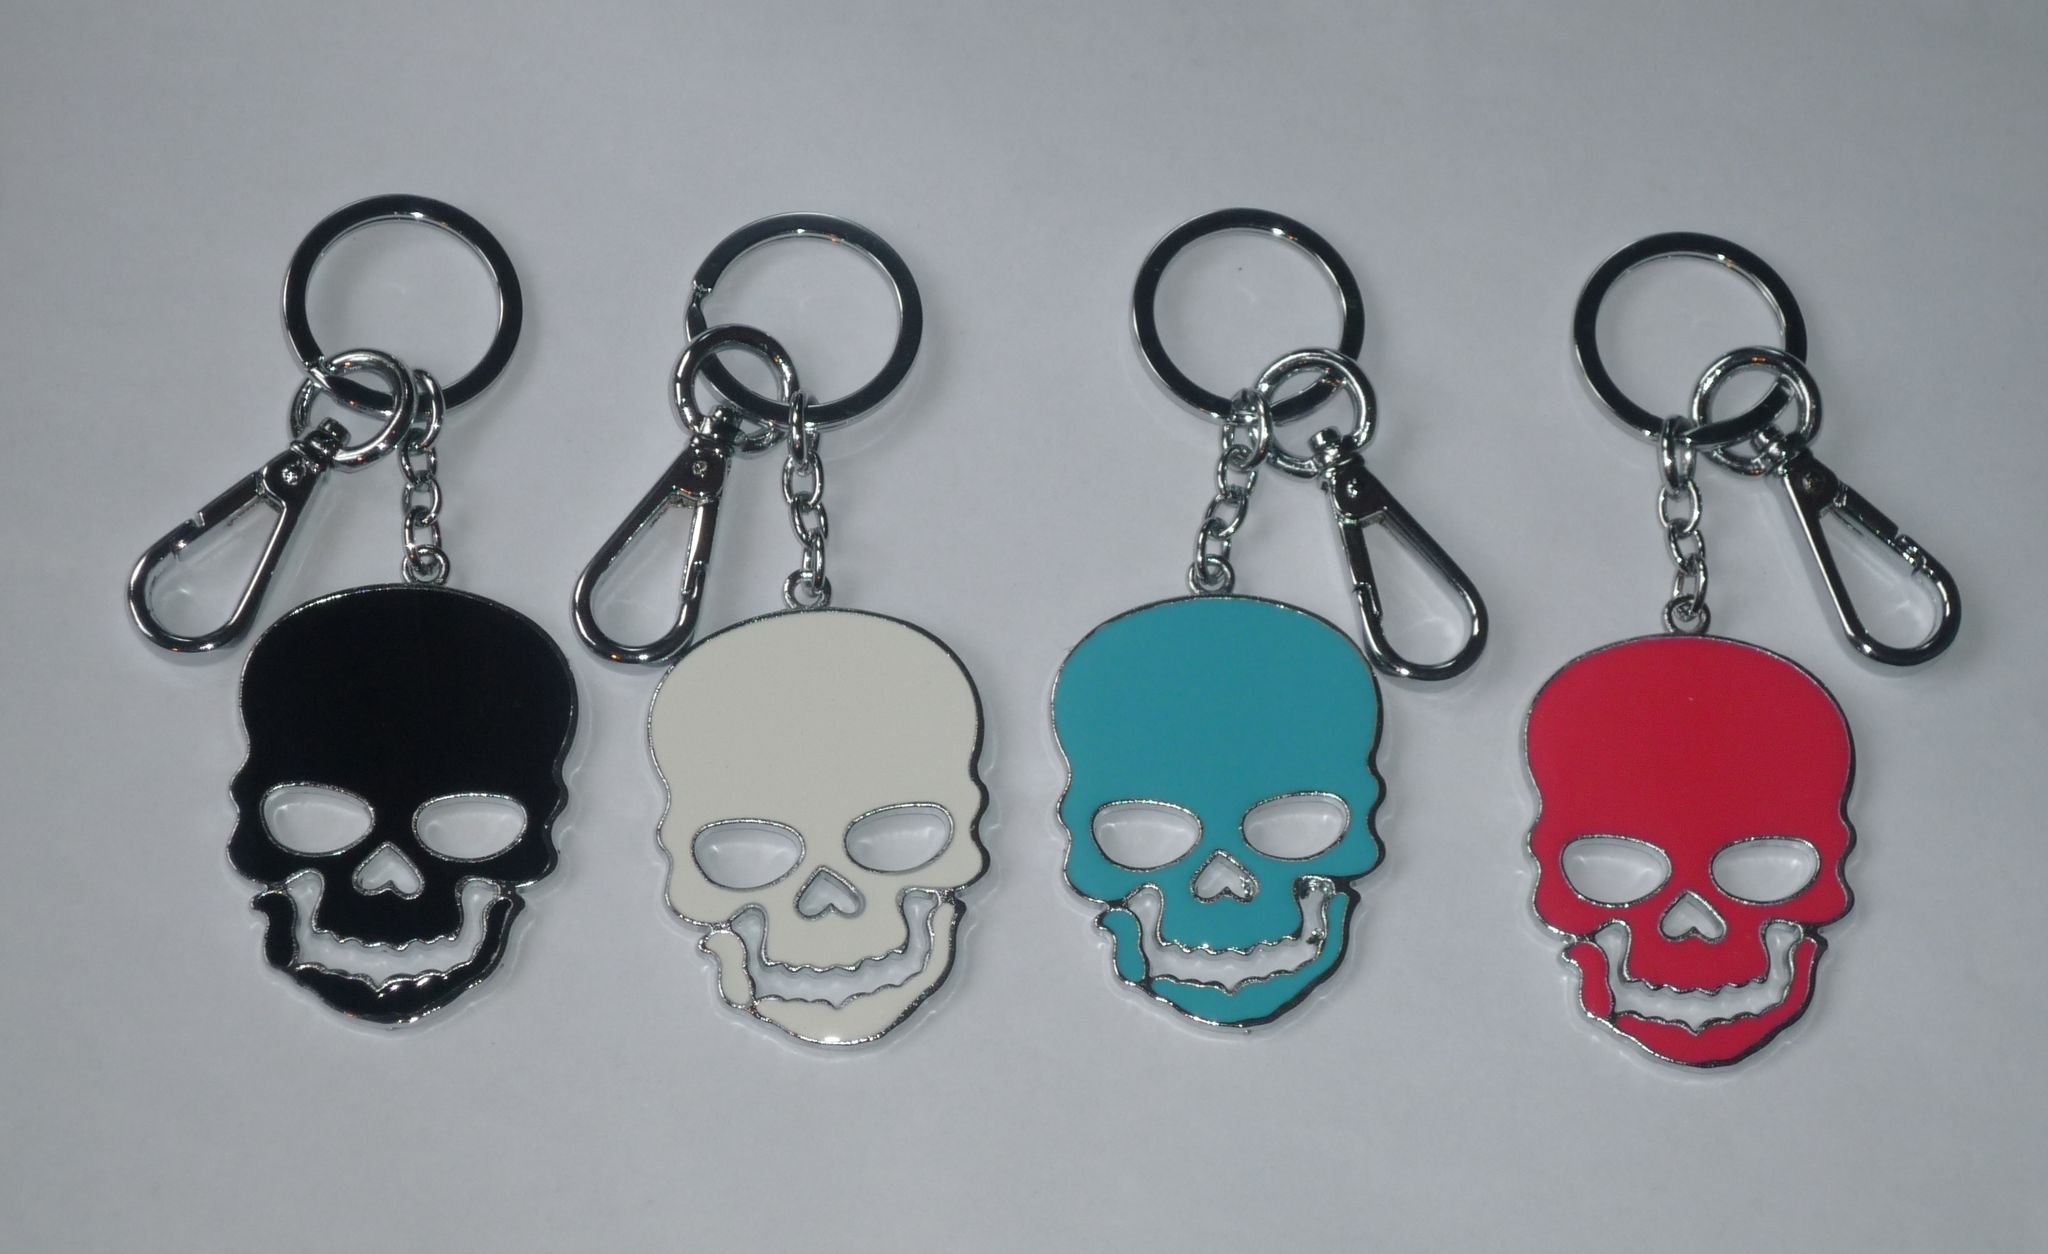 cheap exquisite design official shop v) Porte clé Skull- Tête de mort - Album photos - CHooCH